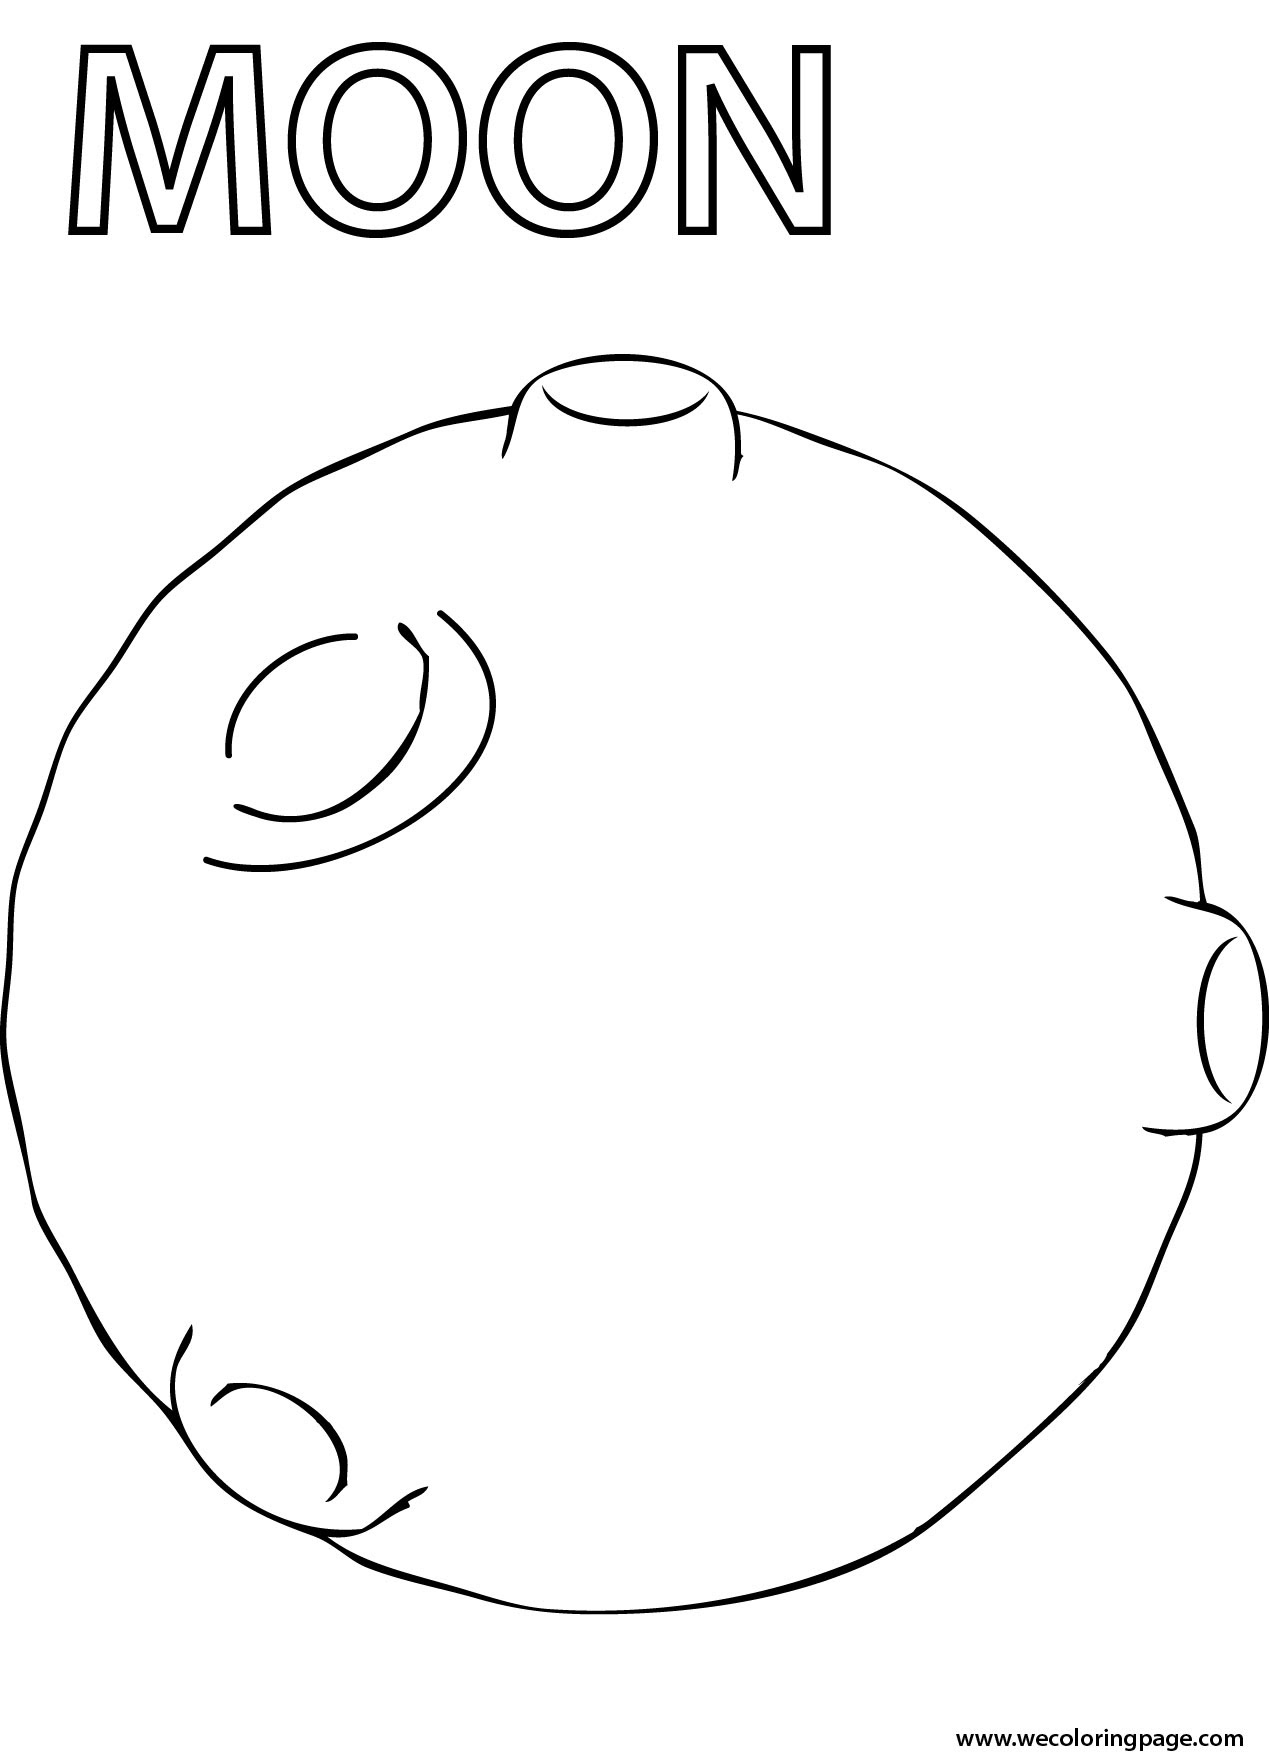 Free Printable Moon Coloring Pages for Kids Best Coloring Pages ... | 1752x1269